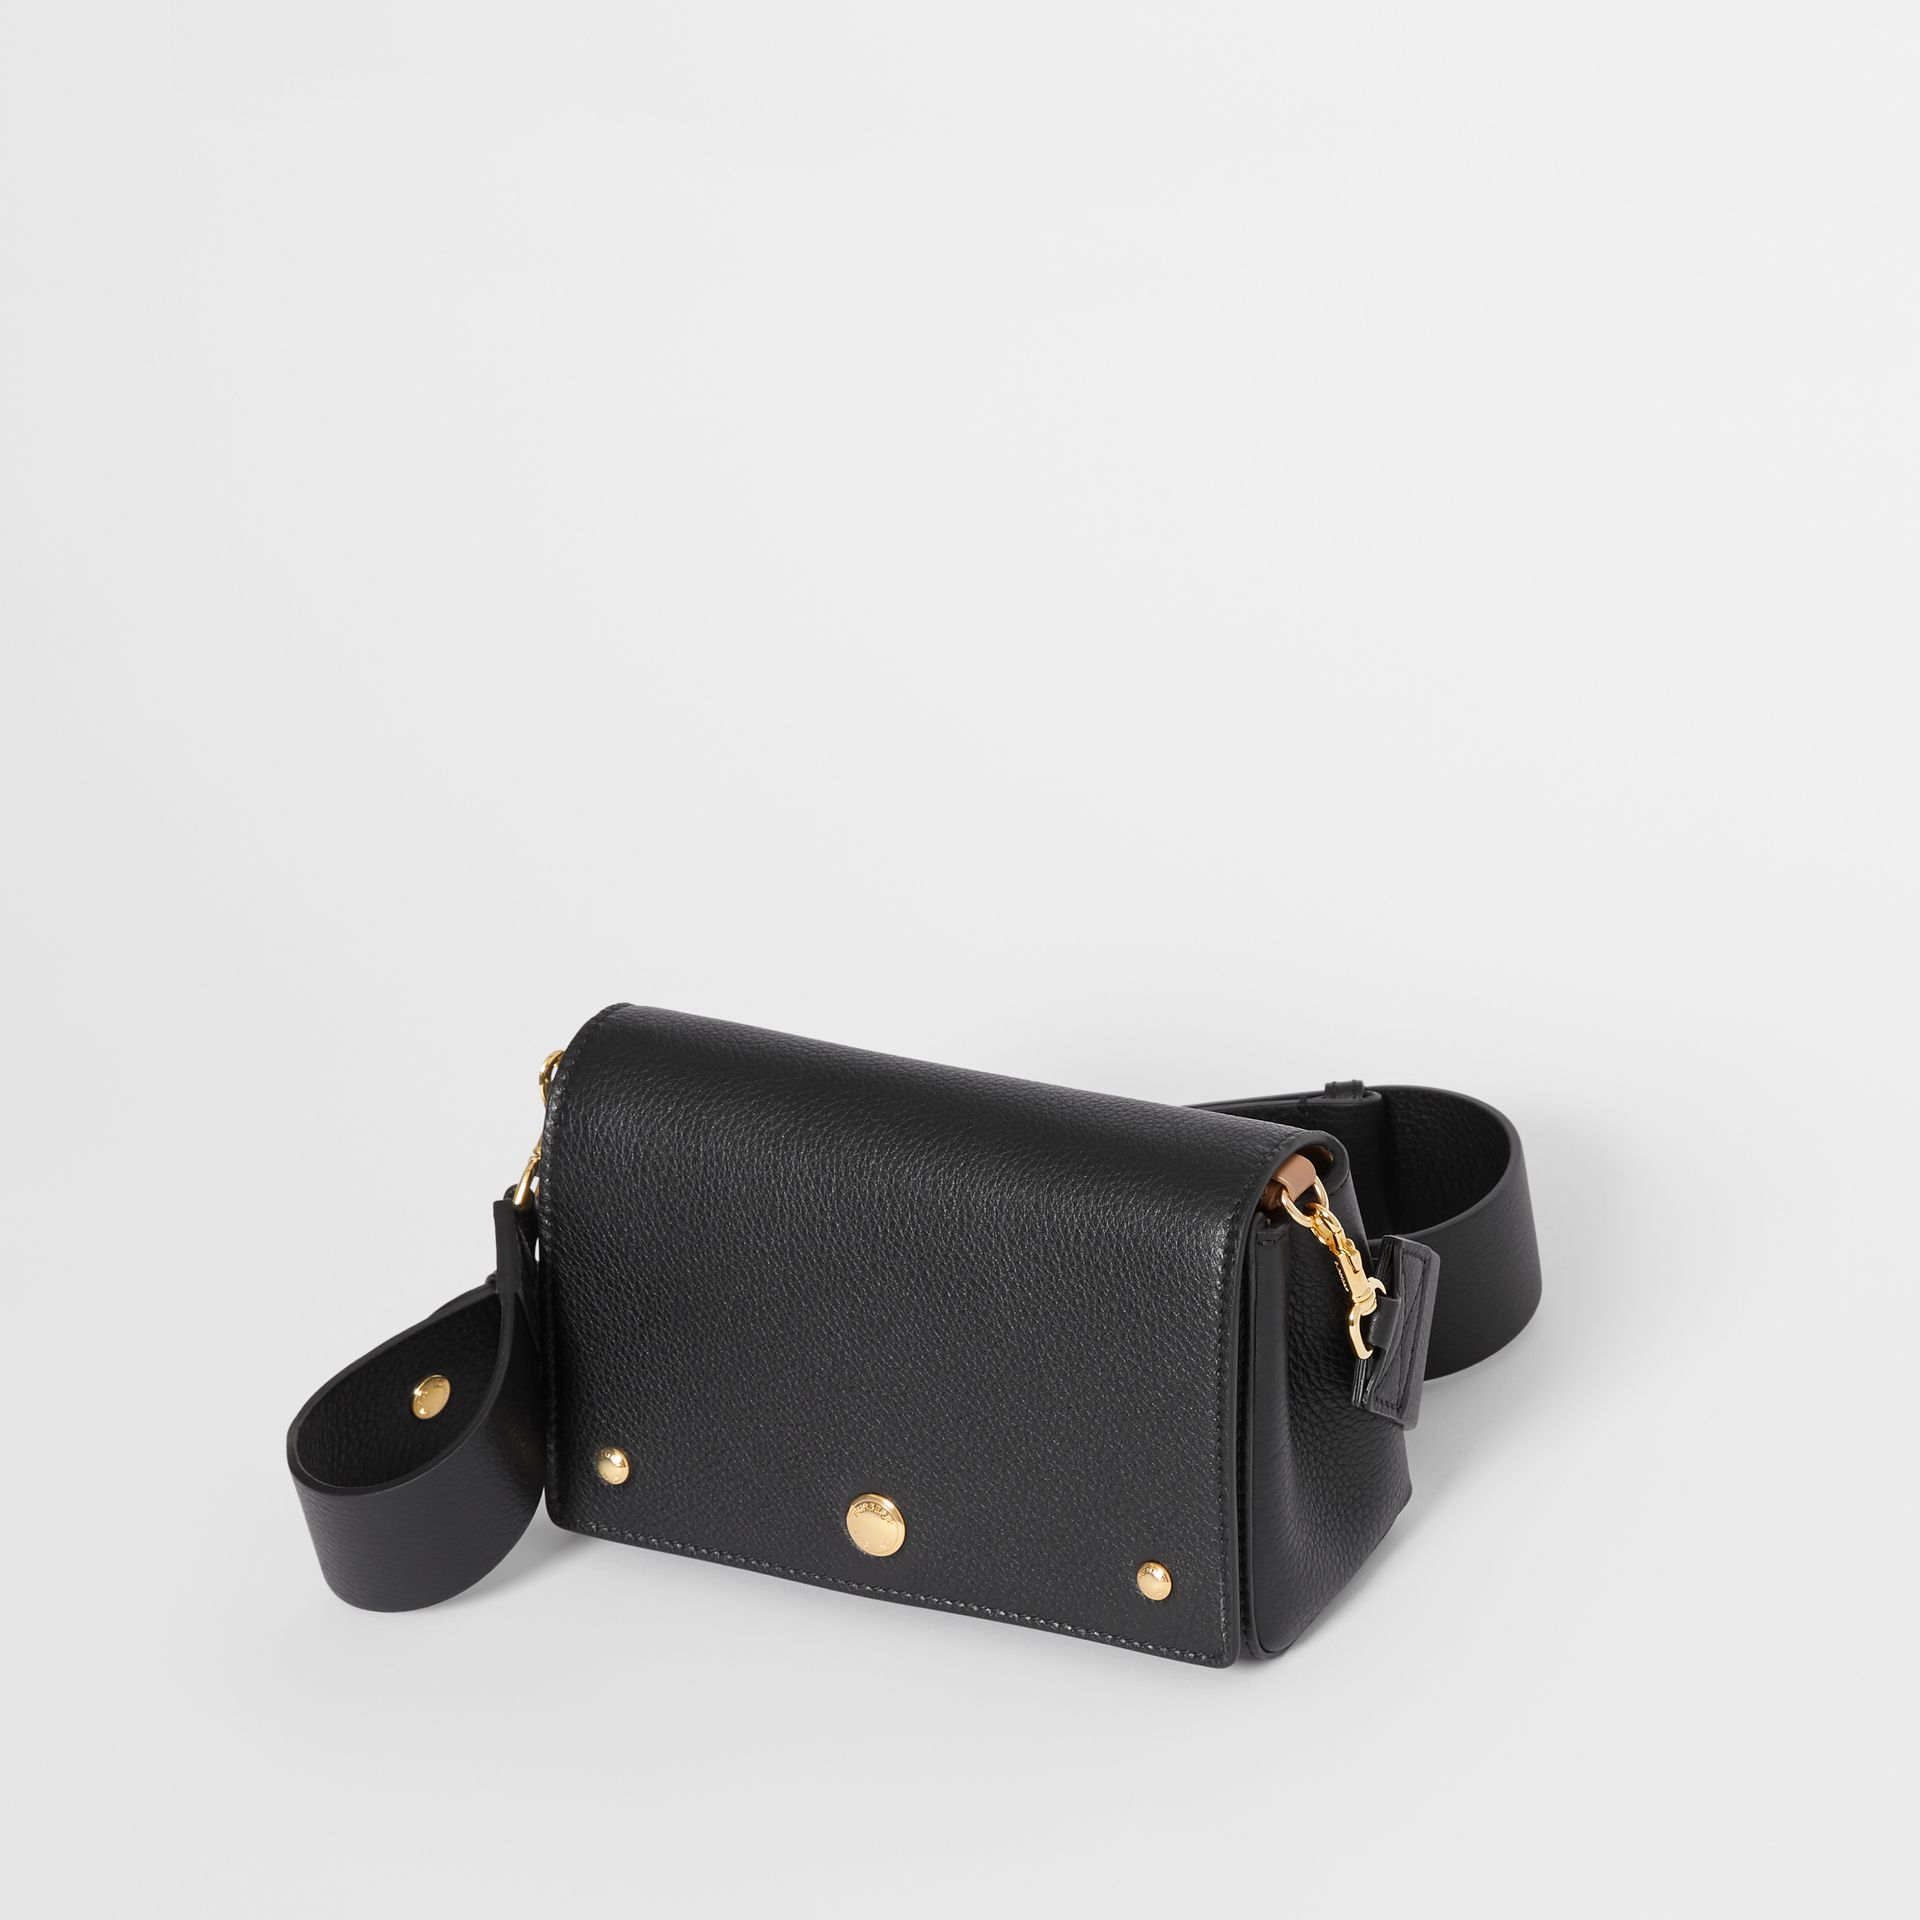 Small Grainy Leather Crossbody Bag in Black - Women | Burberry - gallery image 3